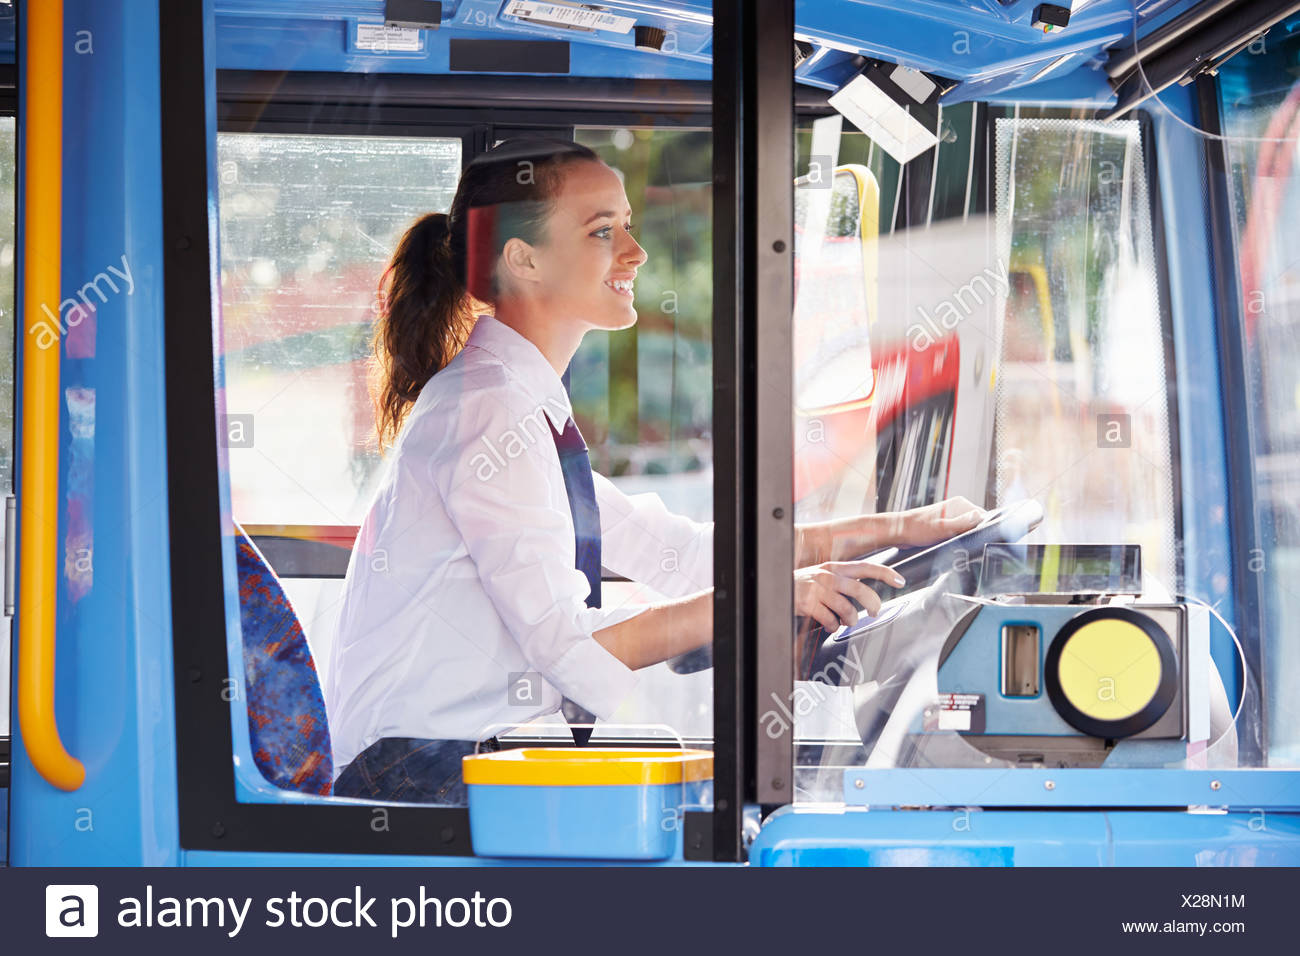 Portrait Of Female Bus Driver Behind Wheel - Stock Image